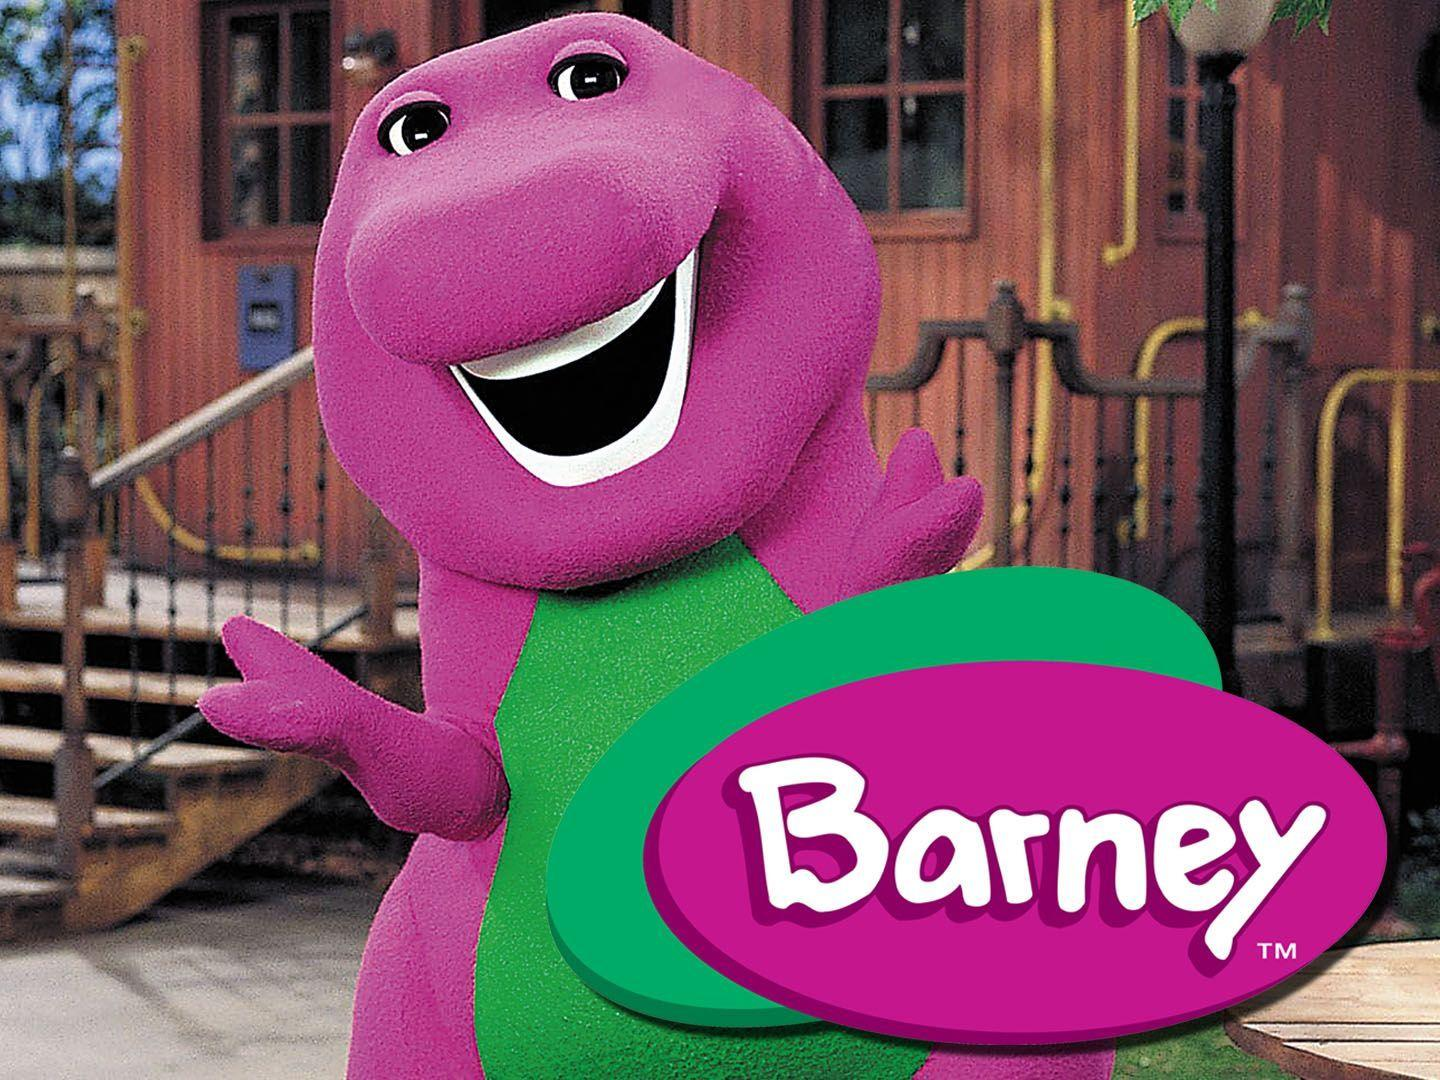 Barney picture, Barney wallpapers